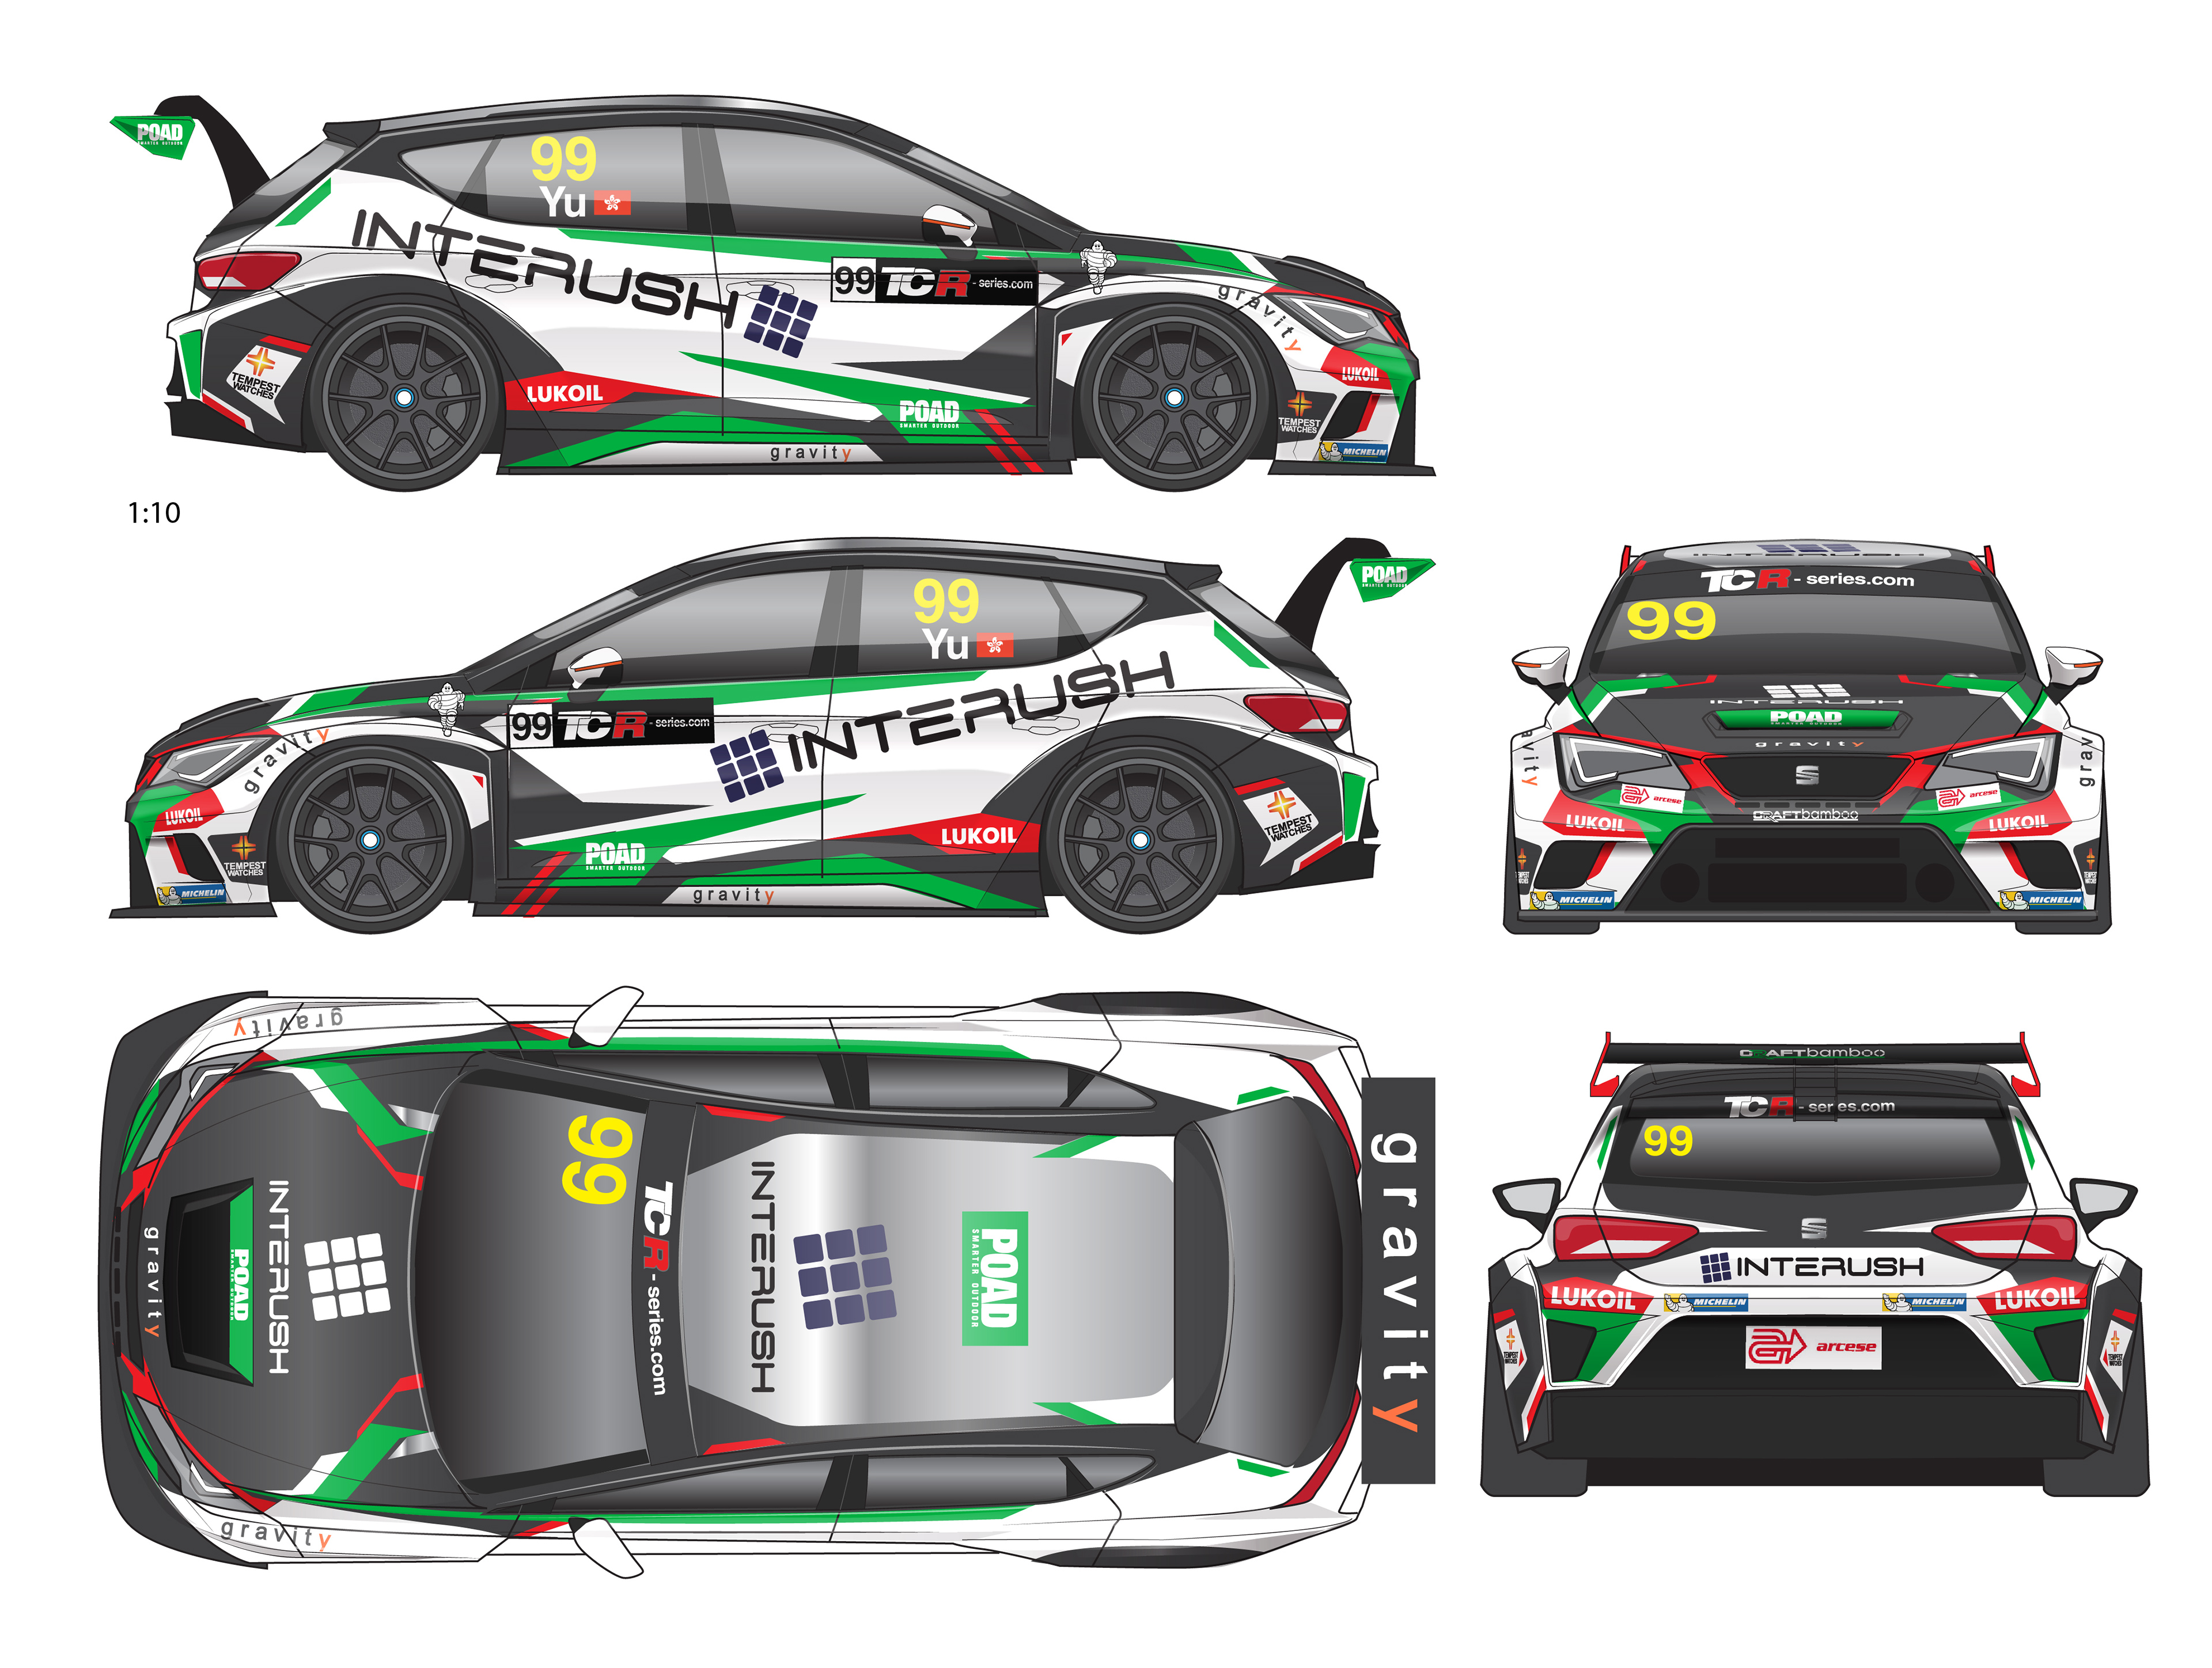 jay wong - Craft Bamboo Racing - Seat Leon TCR Racer livery